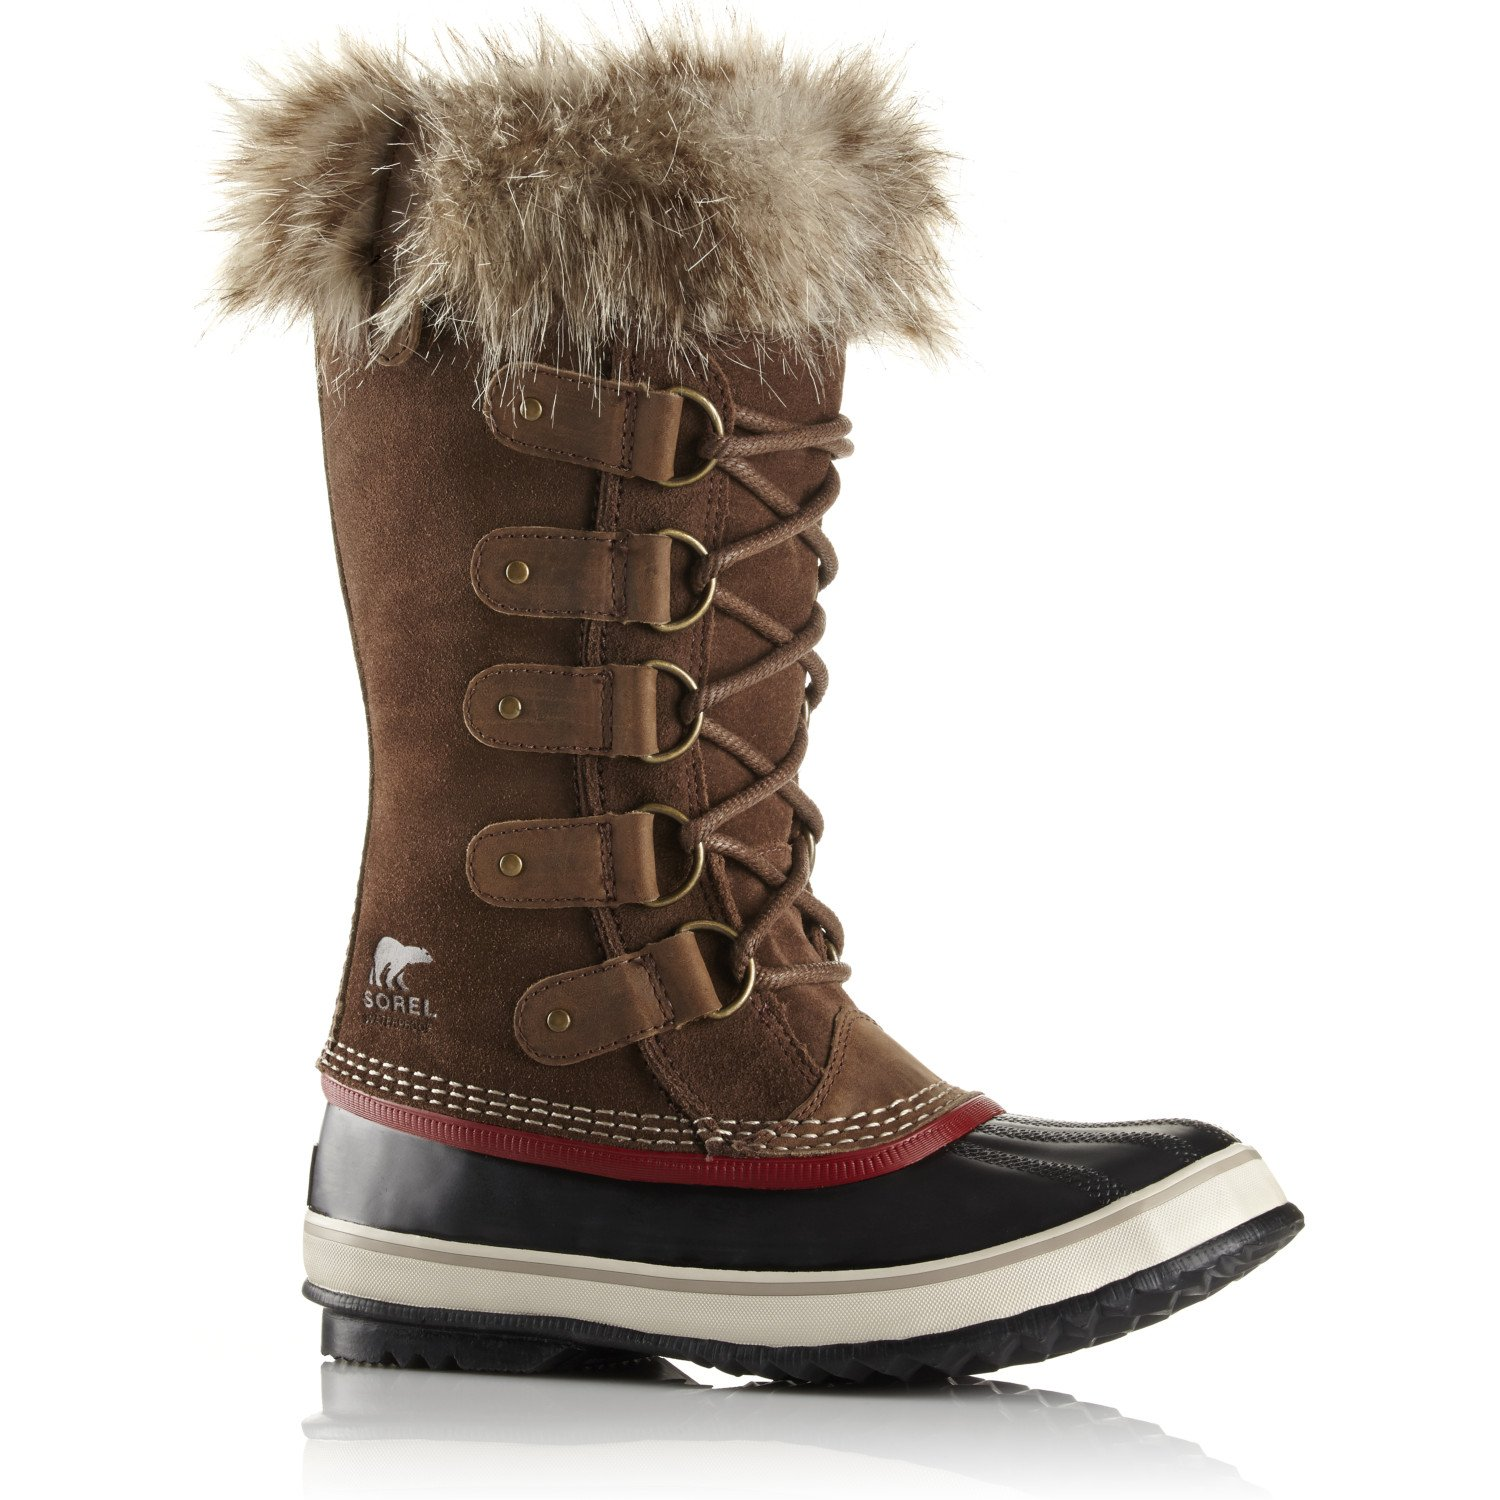 Sorel Joan Of Arctic Boot Womens Style: NL2429-261 Size: 6.5